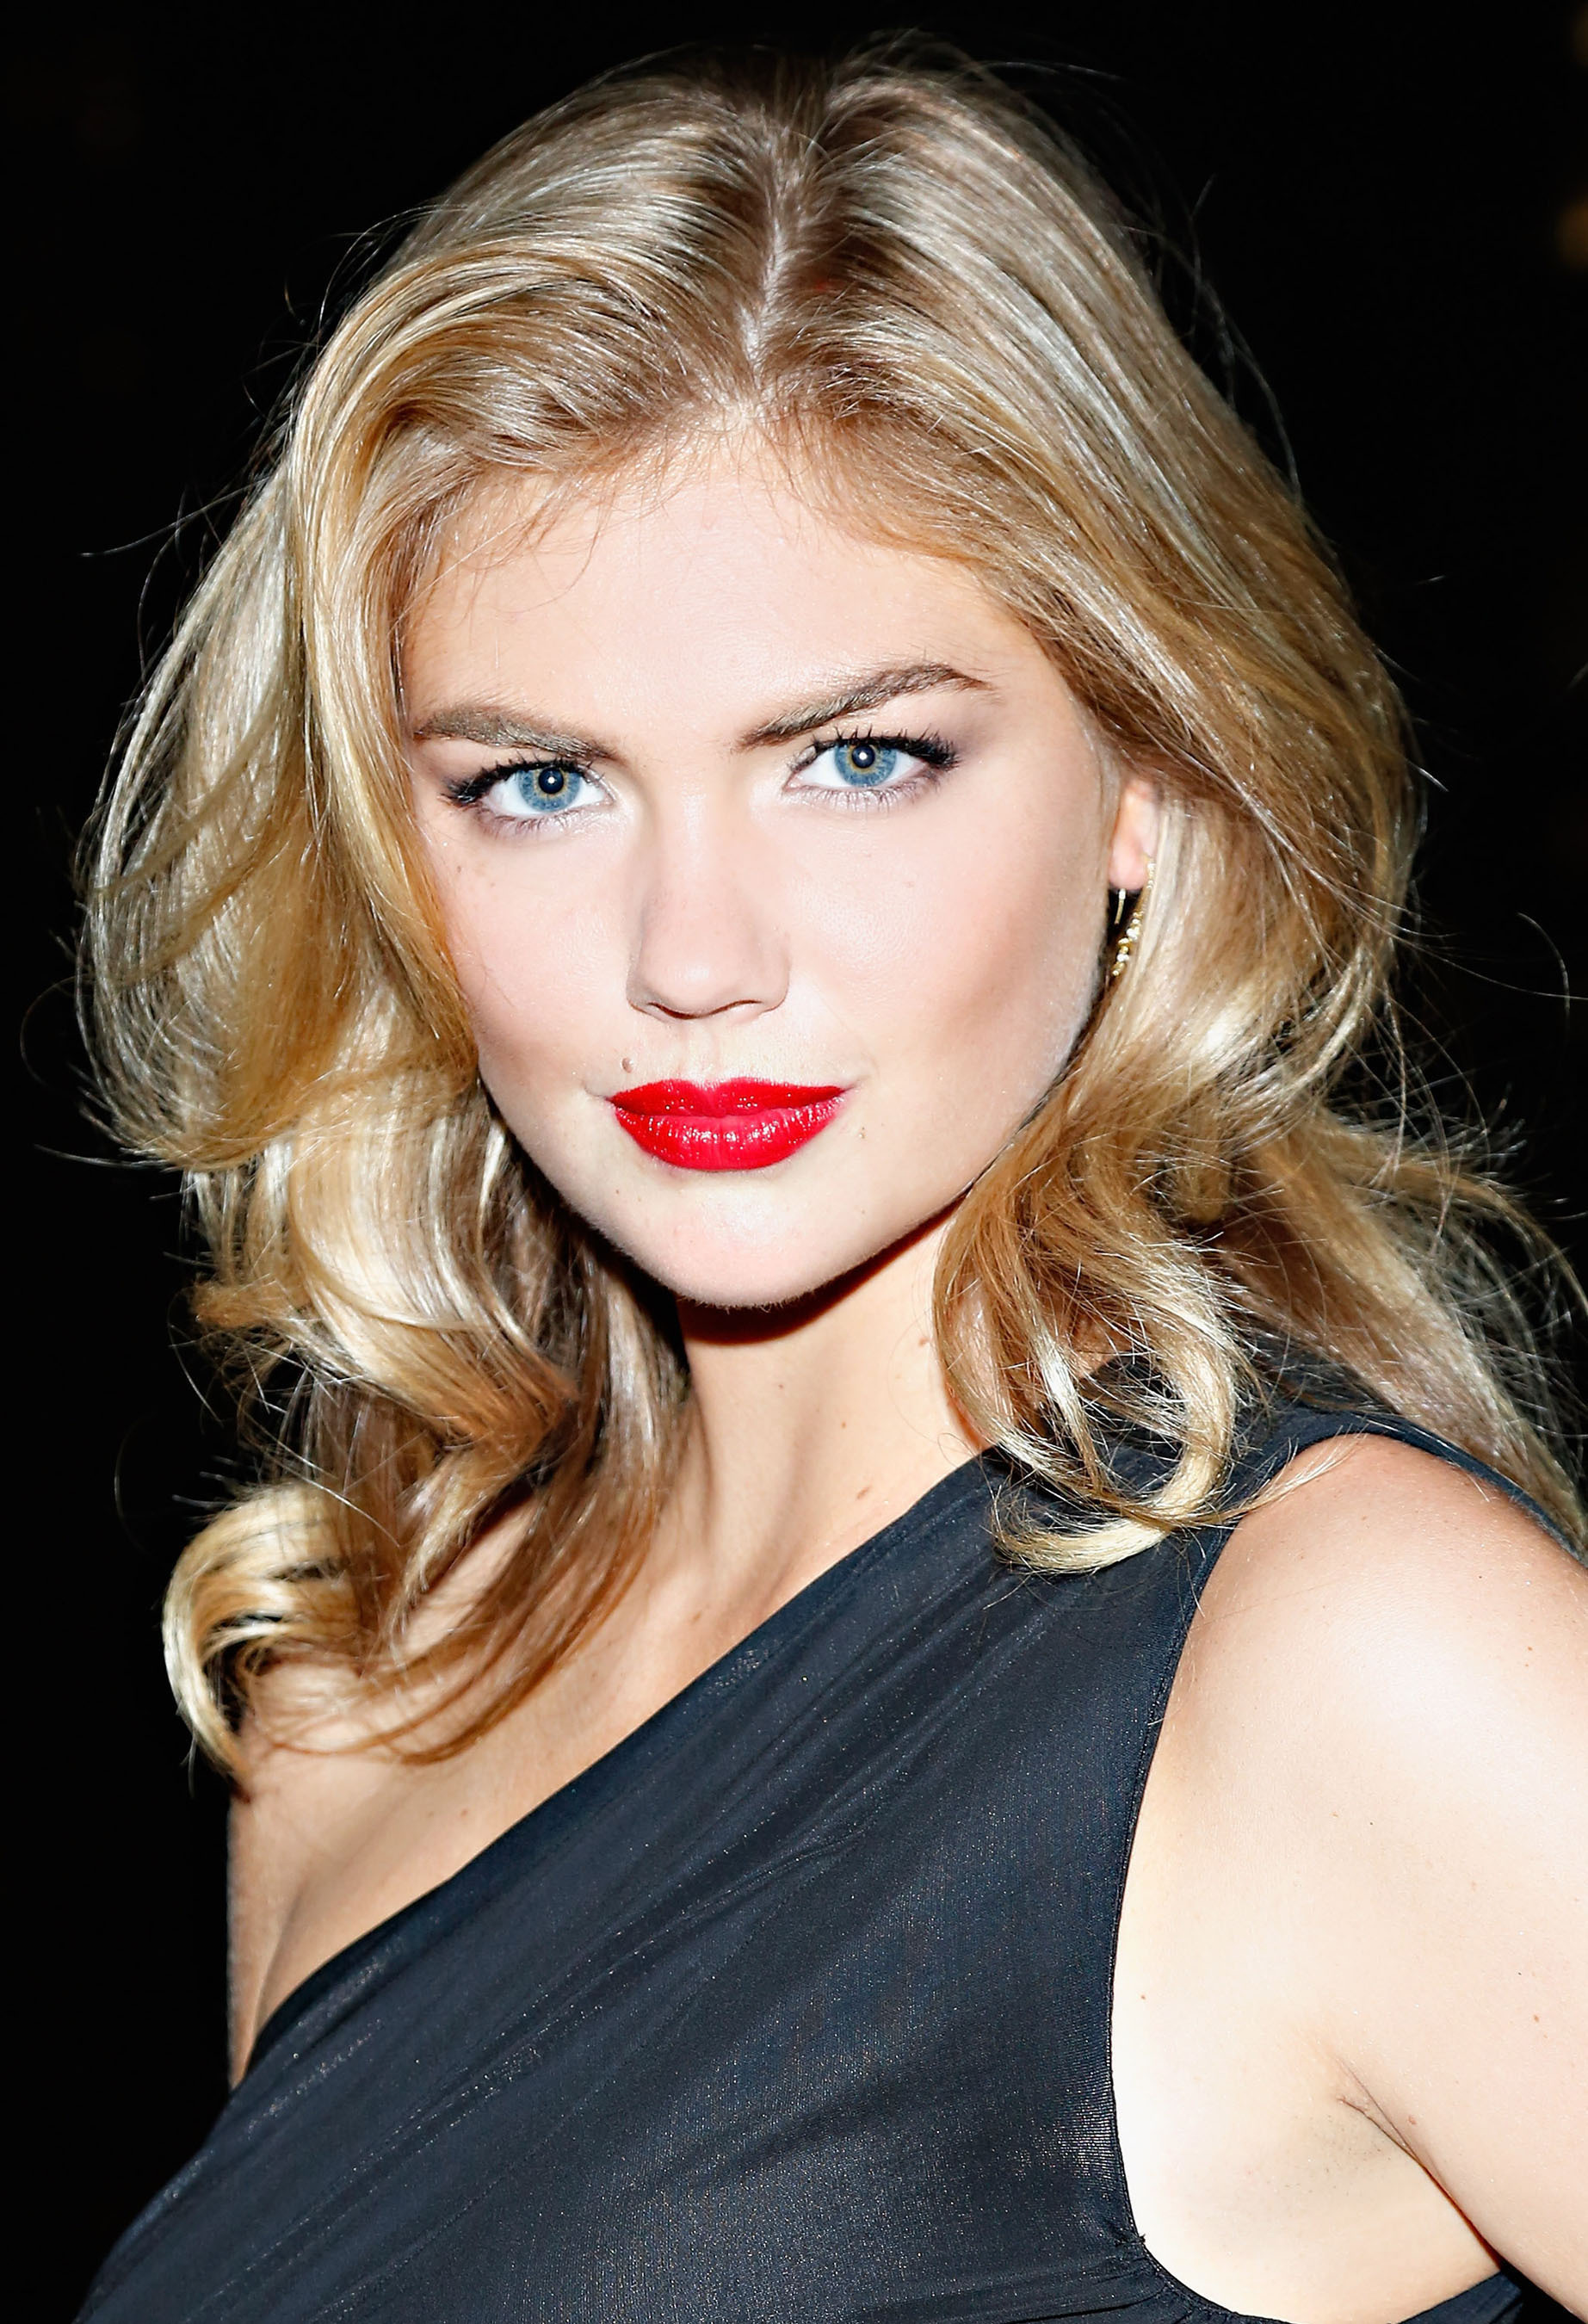 Kate Upton is the New Face of EXPRESS